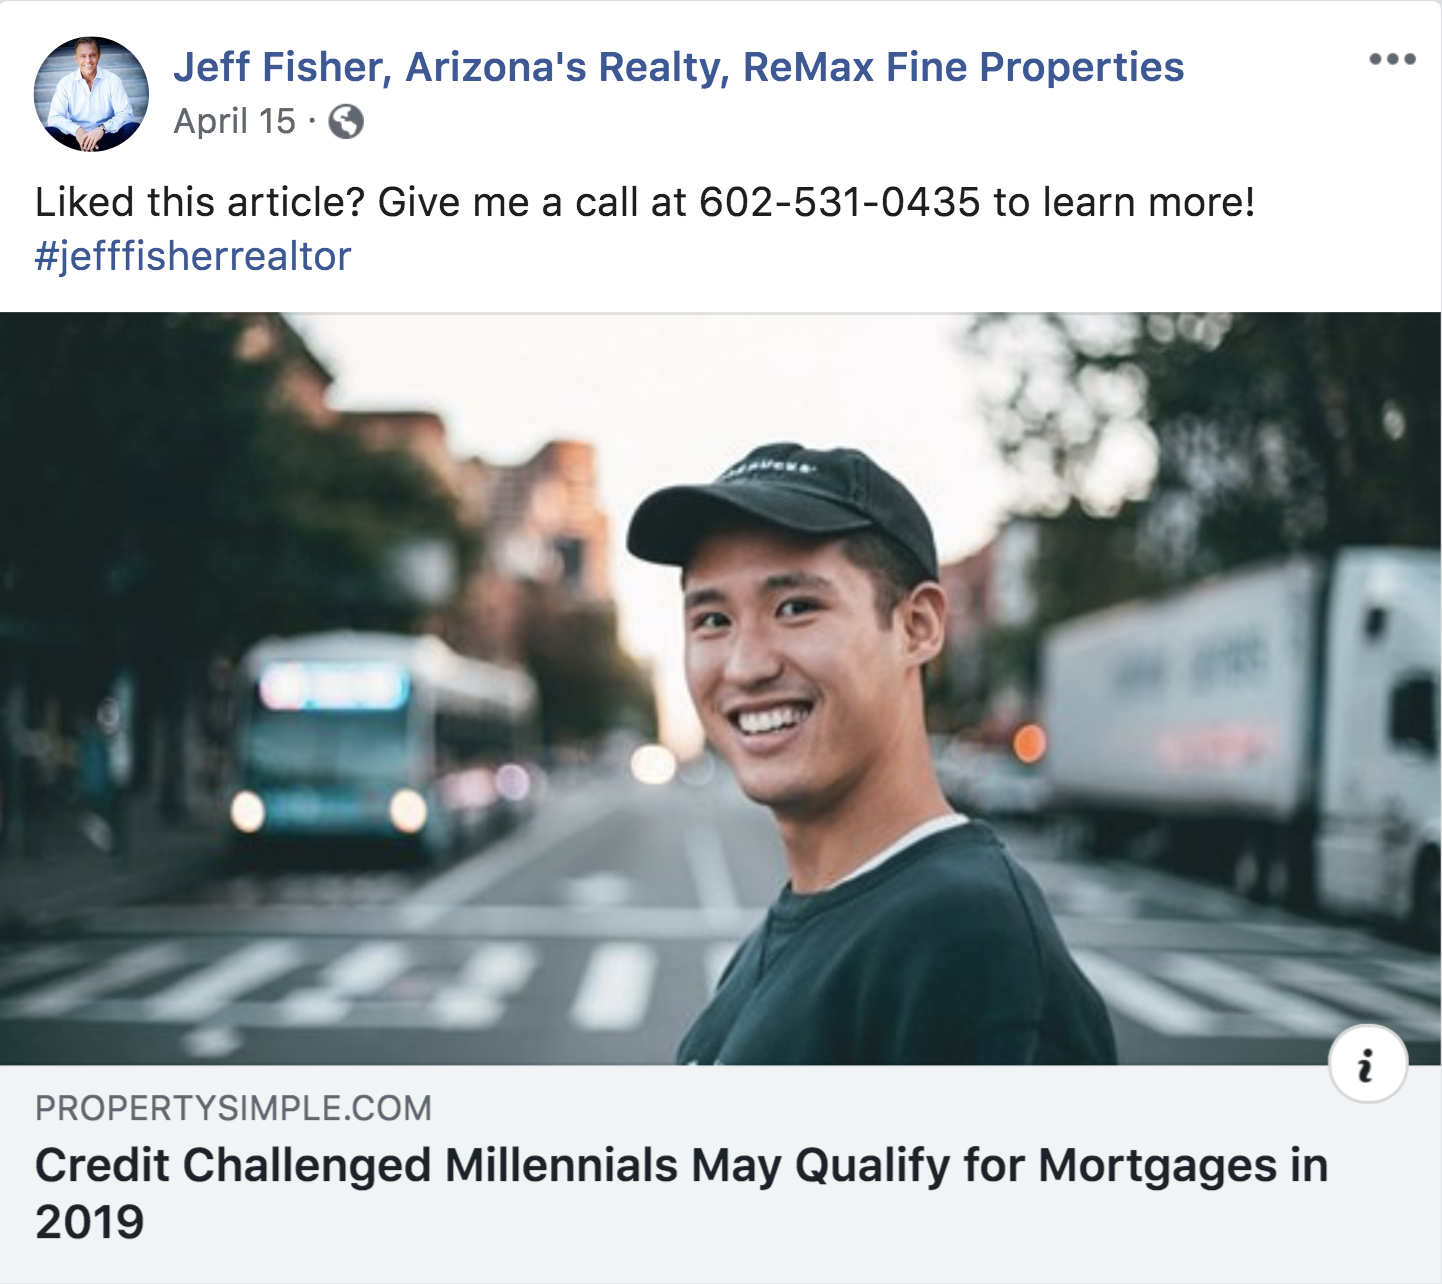 Example of a real estate article post